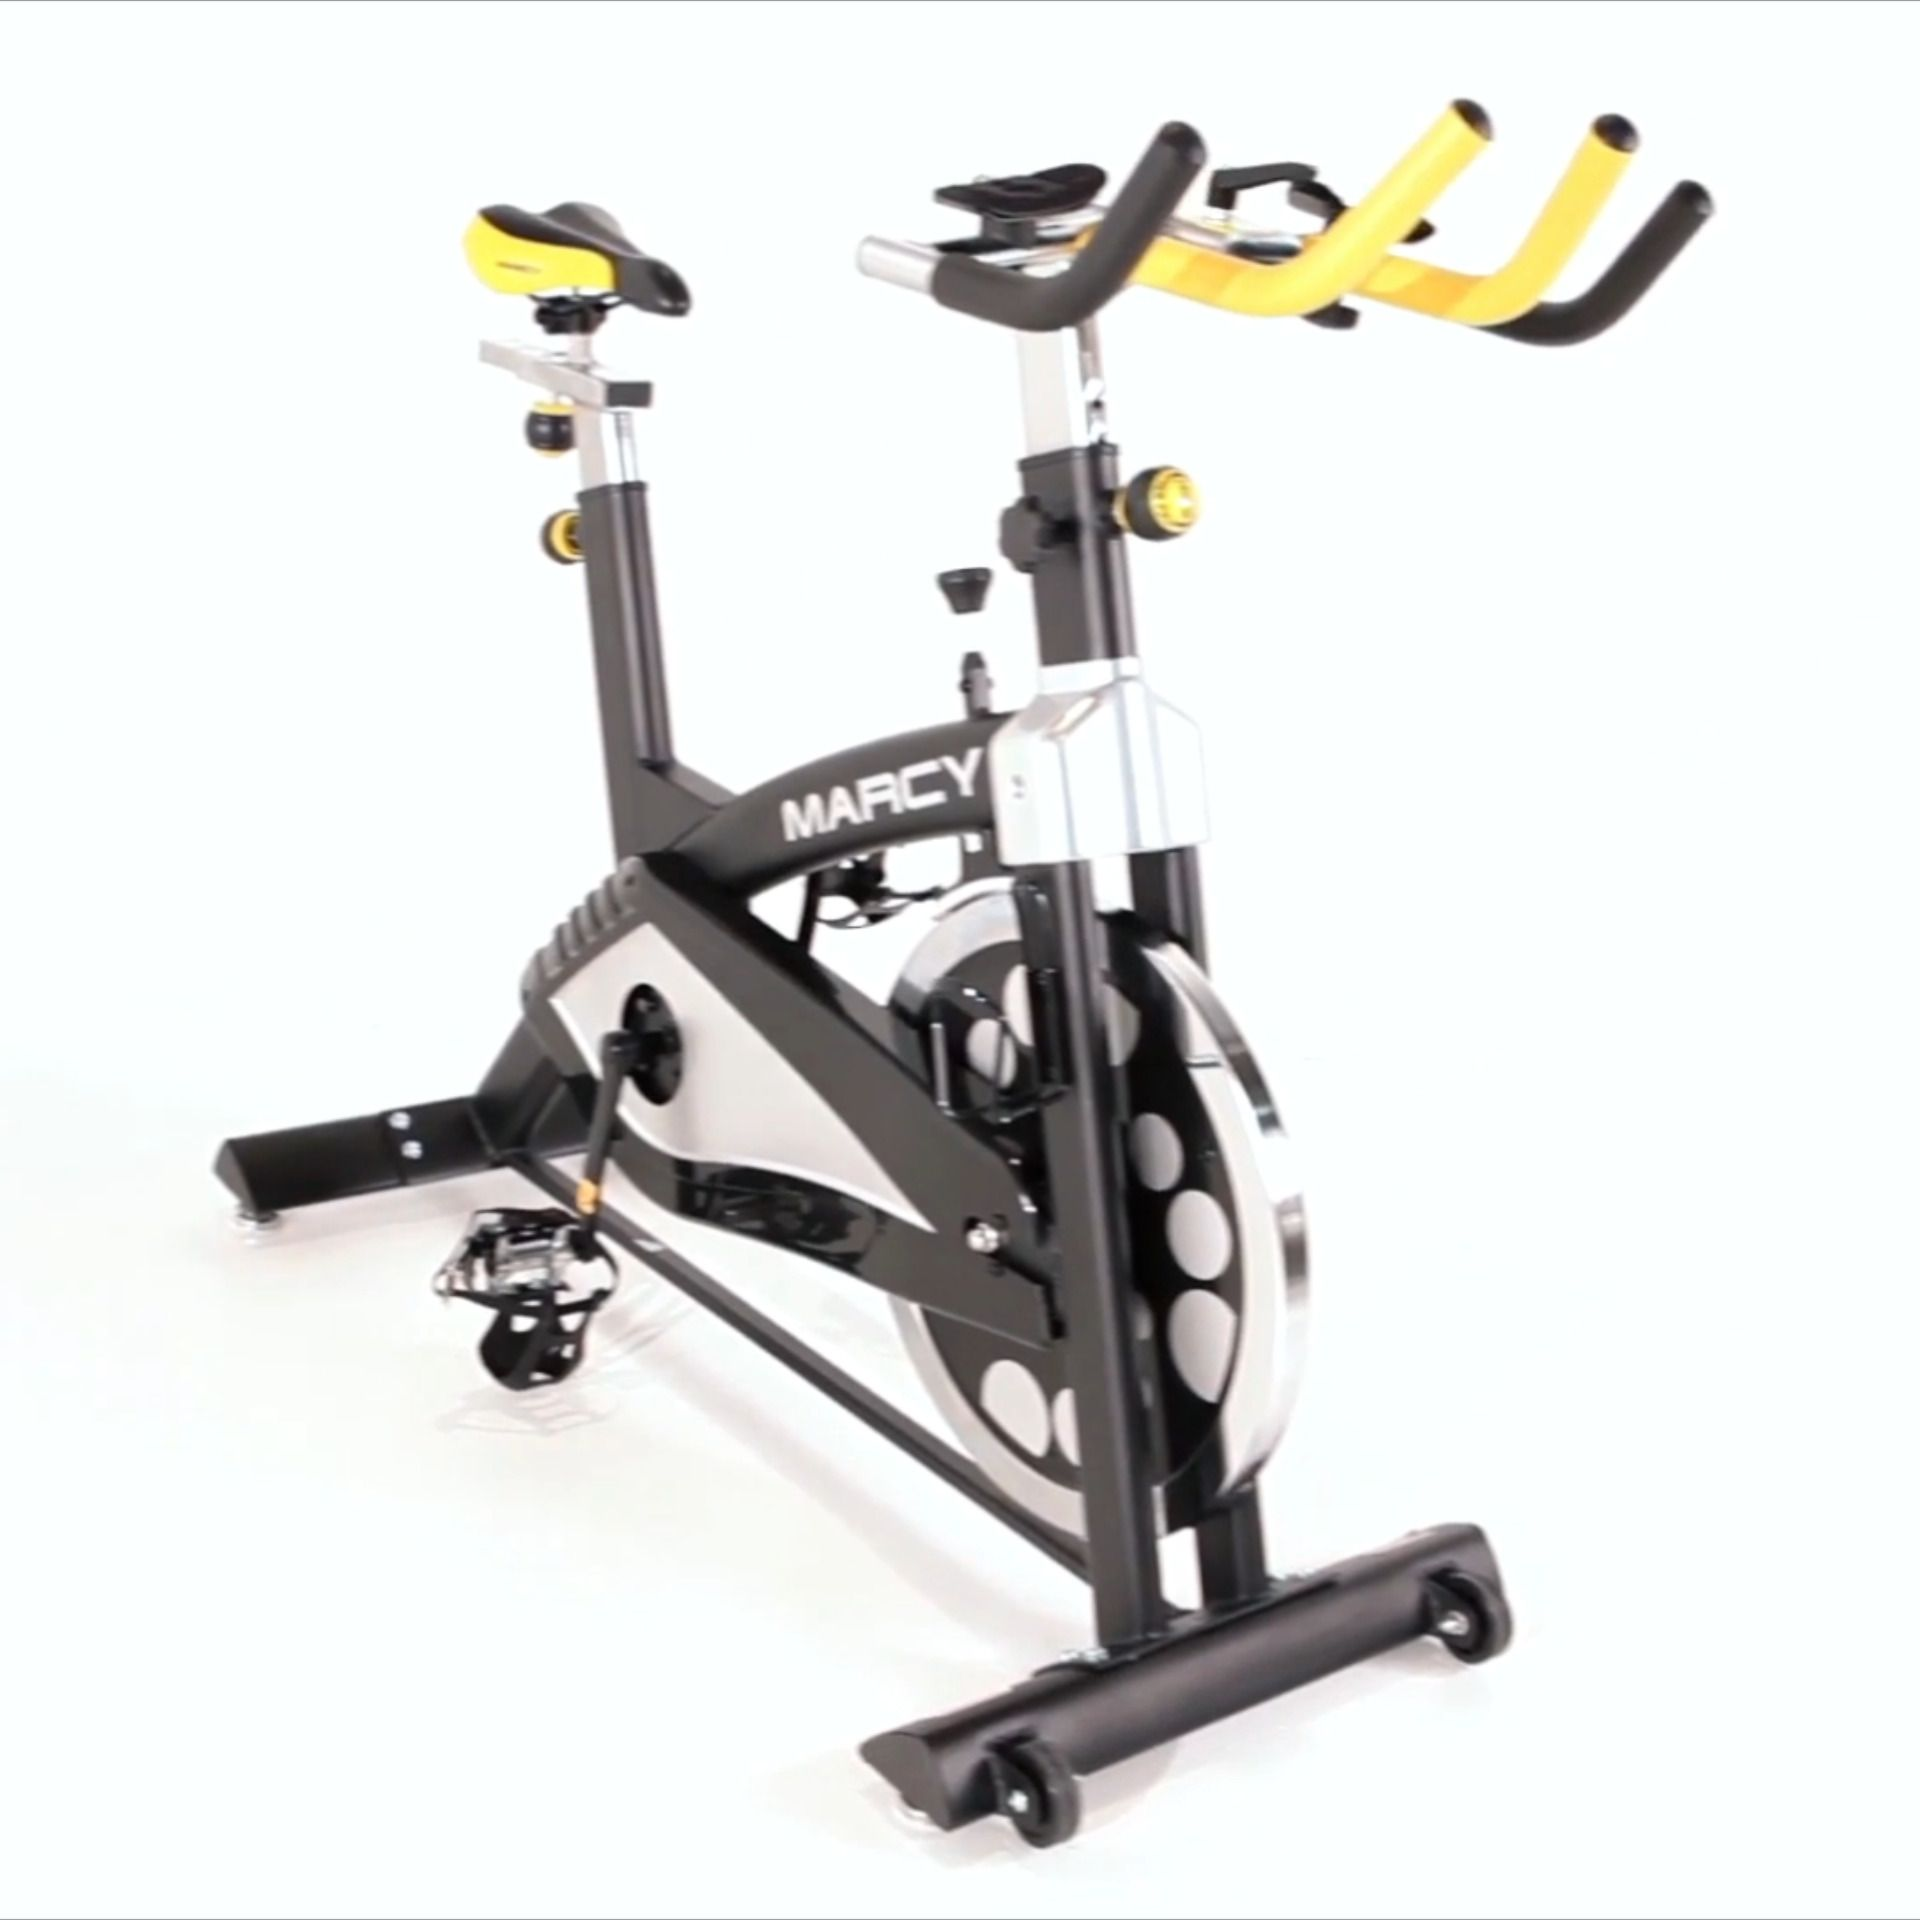 Nordictrack Recumbent Exercise Bike Biking Workout Recumbent Bike Workout Exercise Bike Reviews